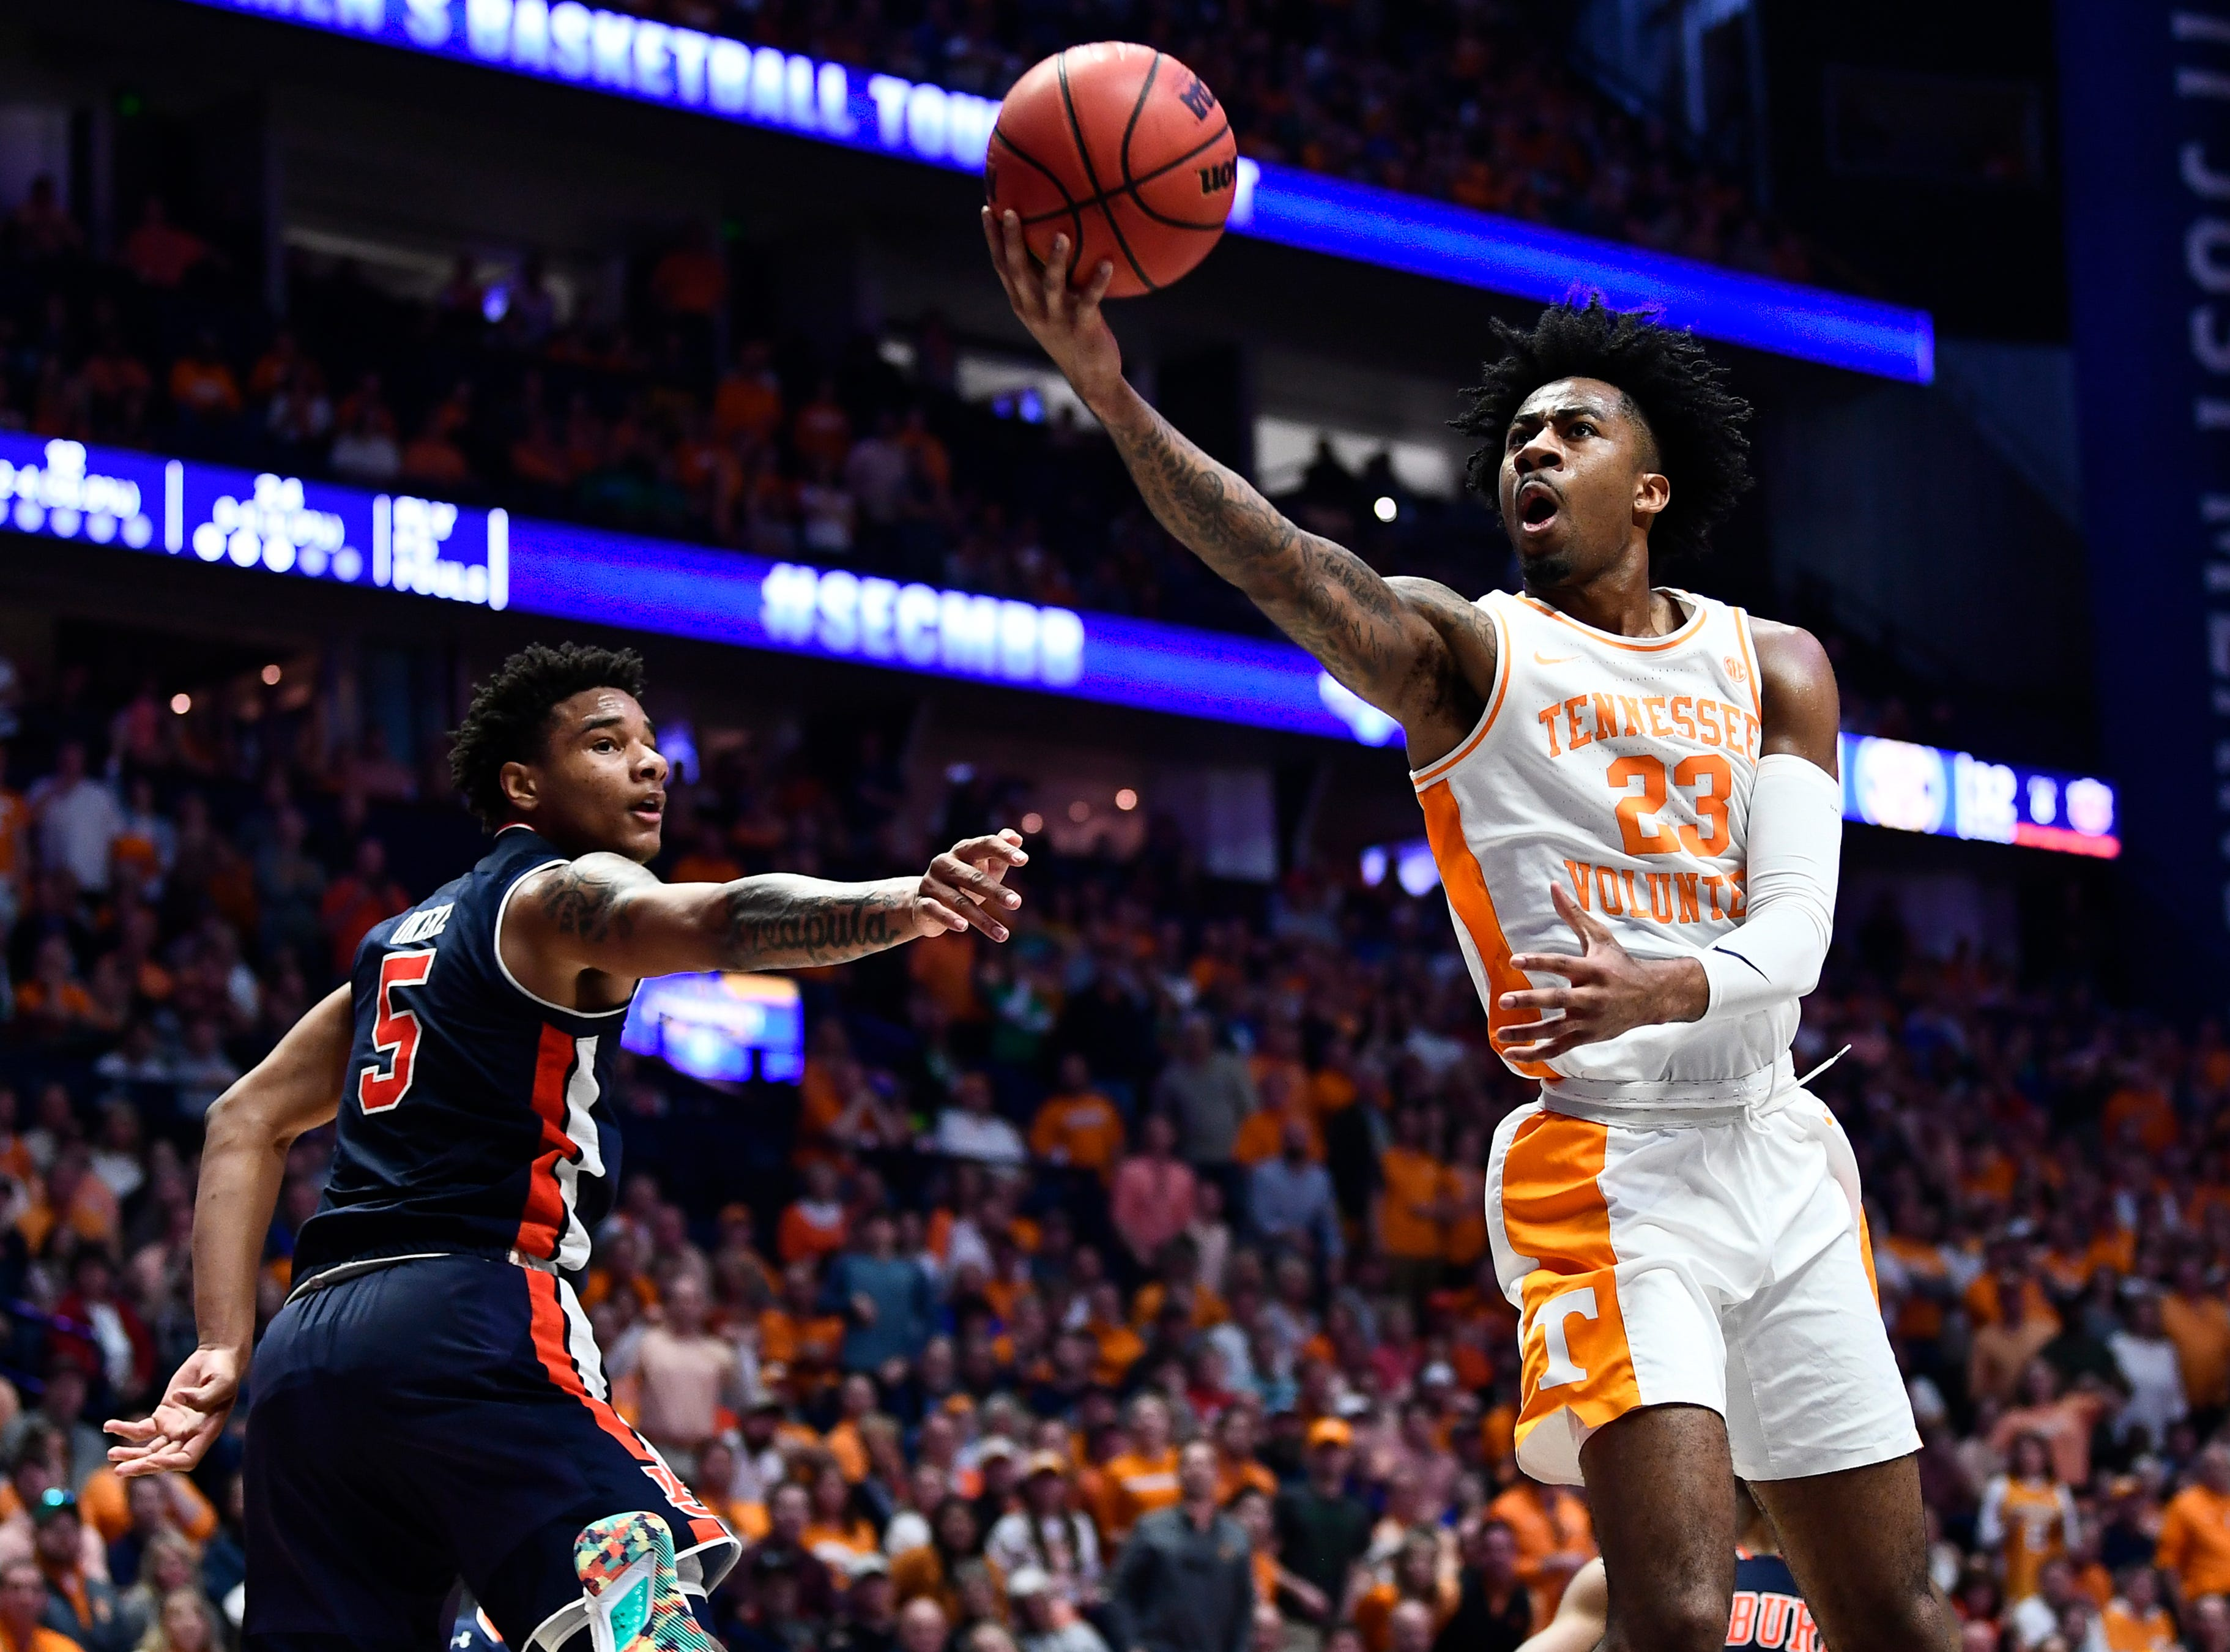 Tennessee guard Jordan Bowden (23) makes a layup in the final seconds of the first half of the SEC Men's Basketball Tournament championship game at Bridgestone Arena in Nashville, Tenn., Sunday, March 17, 2019.